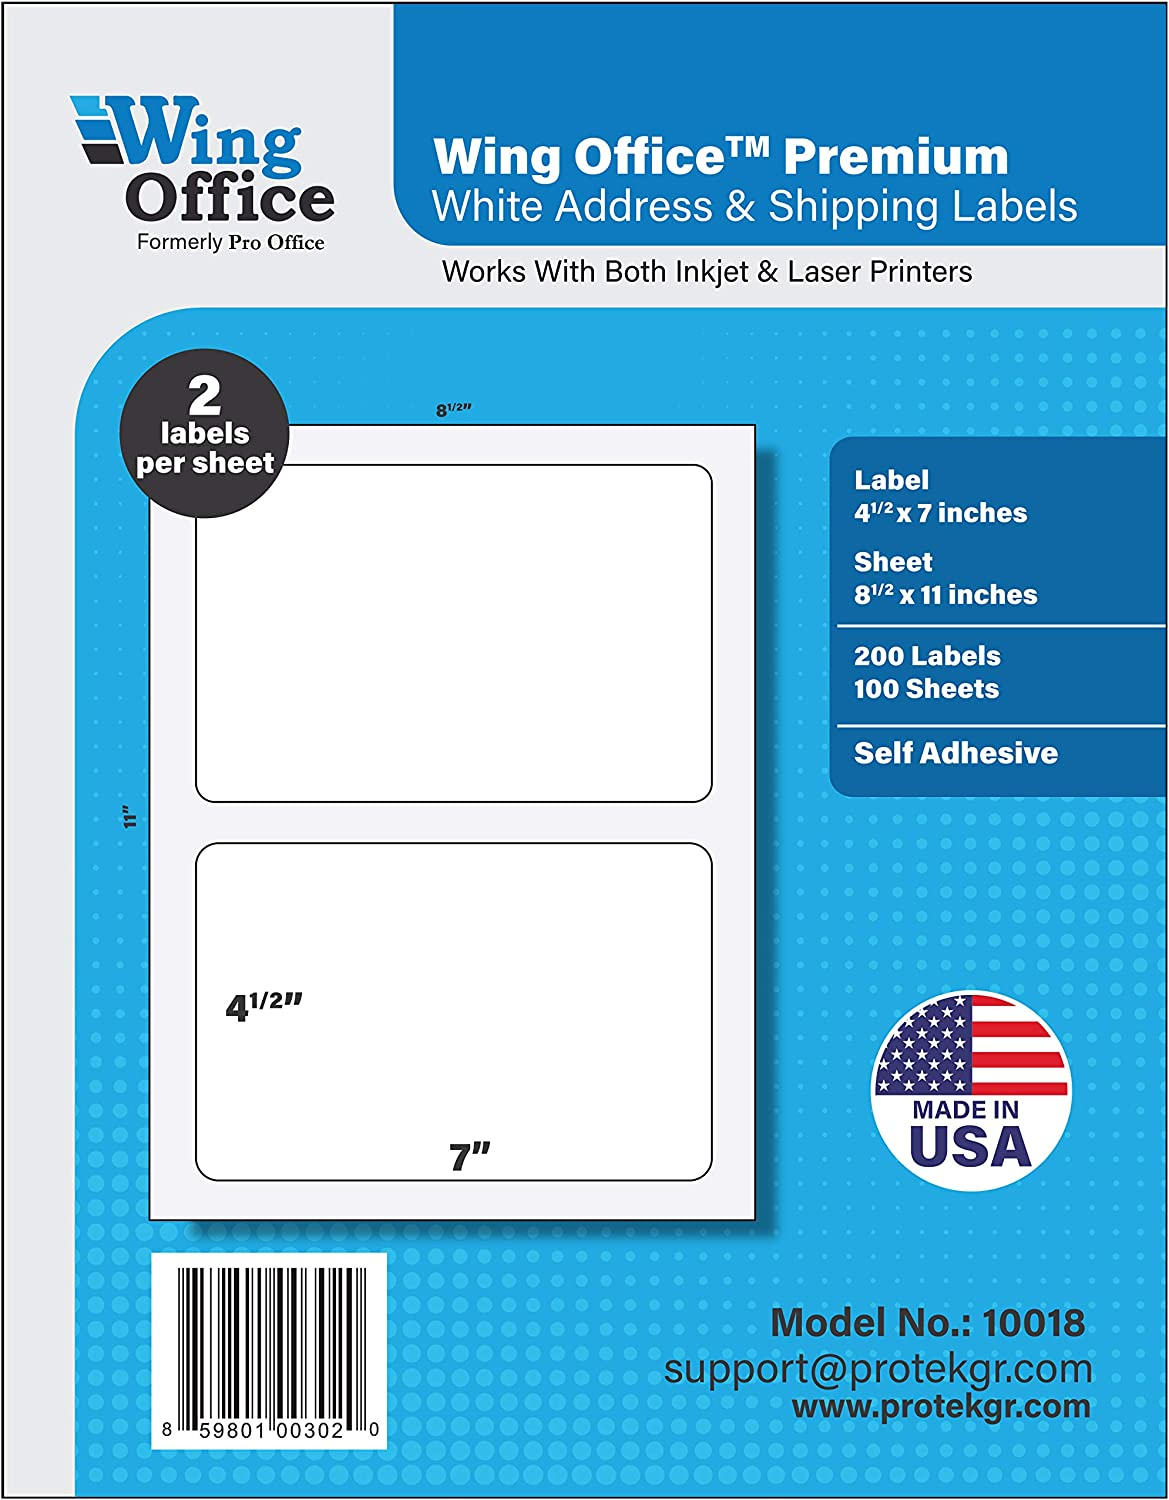 Pro Office Premium 200 Rounded Corner Half Sheet Self Adhesive Shipping Labels for Laser Printers and Ink Jet Printers, White, Made in USA, 4.5 x 7.0 Inches, Pack of 200